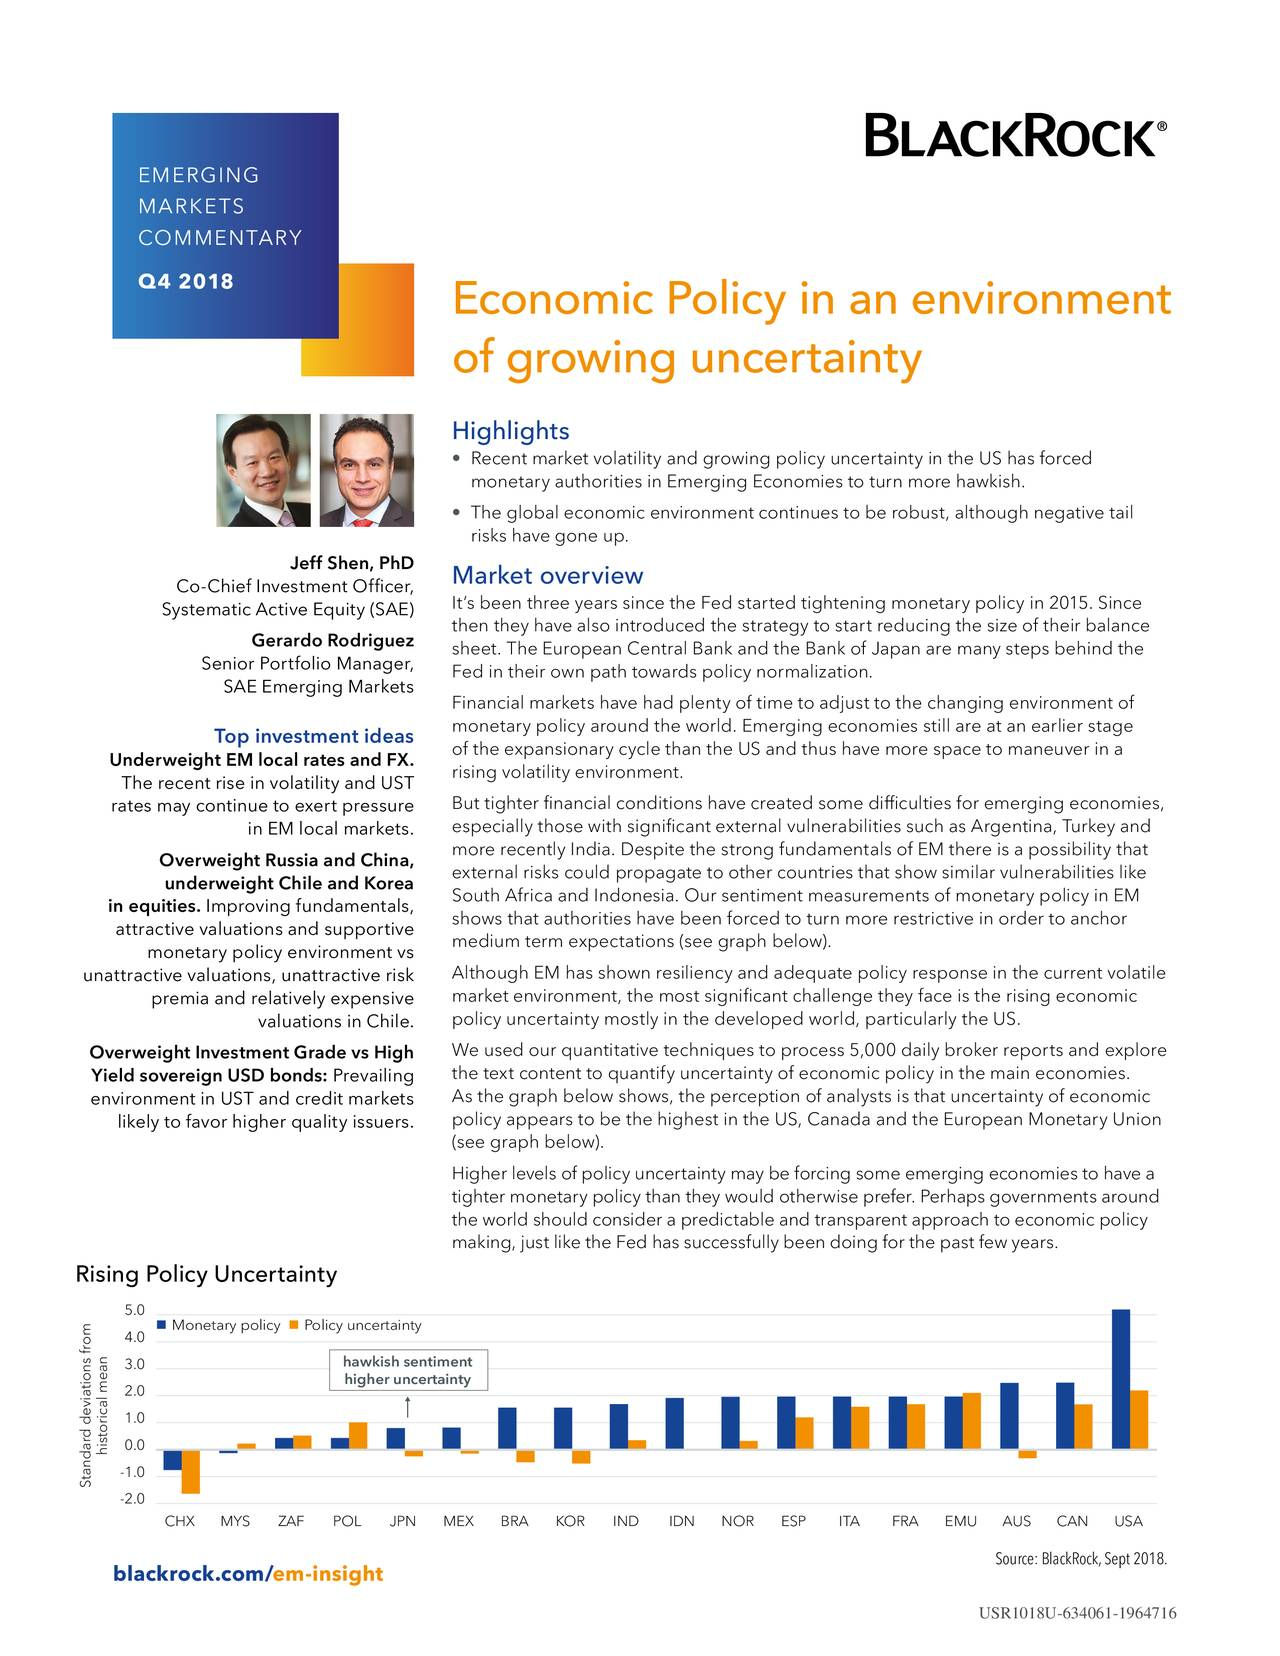 MARKETS COMMENTARY Q4 2018 Economic Policy in an environment of growing uncertainty Highlights • Recent market volatility and growing policy uncertainty in the US has forced monetary authorities in Emerging Economies to turn more hawkish. • The global economic environment continues to be robust, although negative tail risks have gone up. Jeff Shen, PhD Market overview Co-Chief Investment Officer, Systematic Active Equity (SAE) It's been three years since the Fed started tightening monetary policy in 2015. Since then they have also introduced the strategy to start reducing the size of their balance Gerardo Rodriguez Senior Portfolio Manager, sheet. The European Central Bank and the Bank of Japan are many steps behind the Fed in their own path towards policy normalization. SAE Emerging Markets Financial markets have had plenty of time to adjust to the changing environment of monetary policy around the world. Emerging economies still are at an earlier stage Top investment ideas Underweight EM local rates and FX. of the expansionary cycle than the US and thus have more space to maneuver in a rising volatility environment. The recent rise in volatility and UST rates may continue to exert pressure But tighter financial conditions have created some difficulties for emerging economies, in EM local markets. especially those with significant external vulnerabilities such as Argentina, Turkey and Overweight Russia and China, more recently India. Despite the strong fundamentals of EM there is a possibility that external risks could propagate to other countries that show similar vulnerabilities like underweight Chile and Korea South Africa and Indonesia. Our sentiment measurements of monetary policy in EM in equities. Improving fundamentals, attractive valuations and supportive shows that authorities have been forced to turn more restrictive in order to anchor medium term expectations (see graph below). monetary policy environment vs unattractive valuations, unattractive risk Al